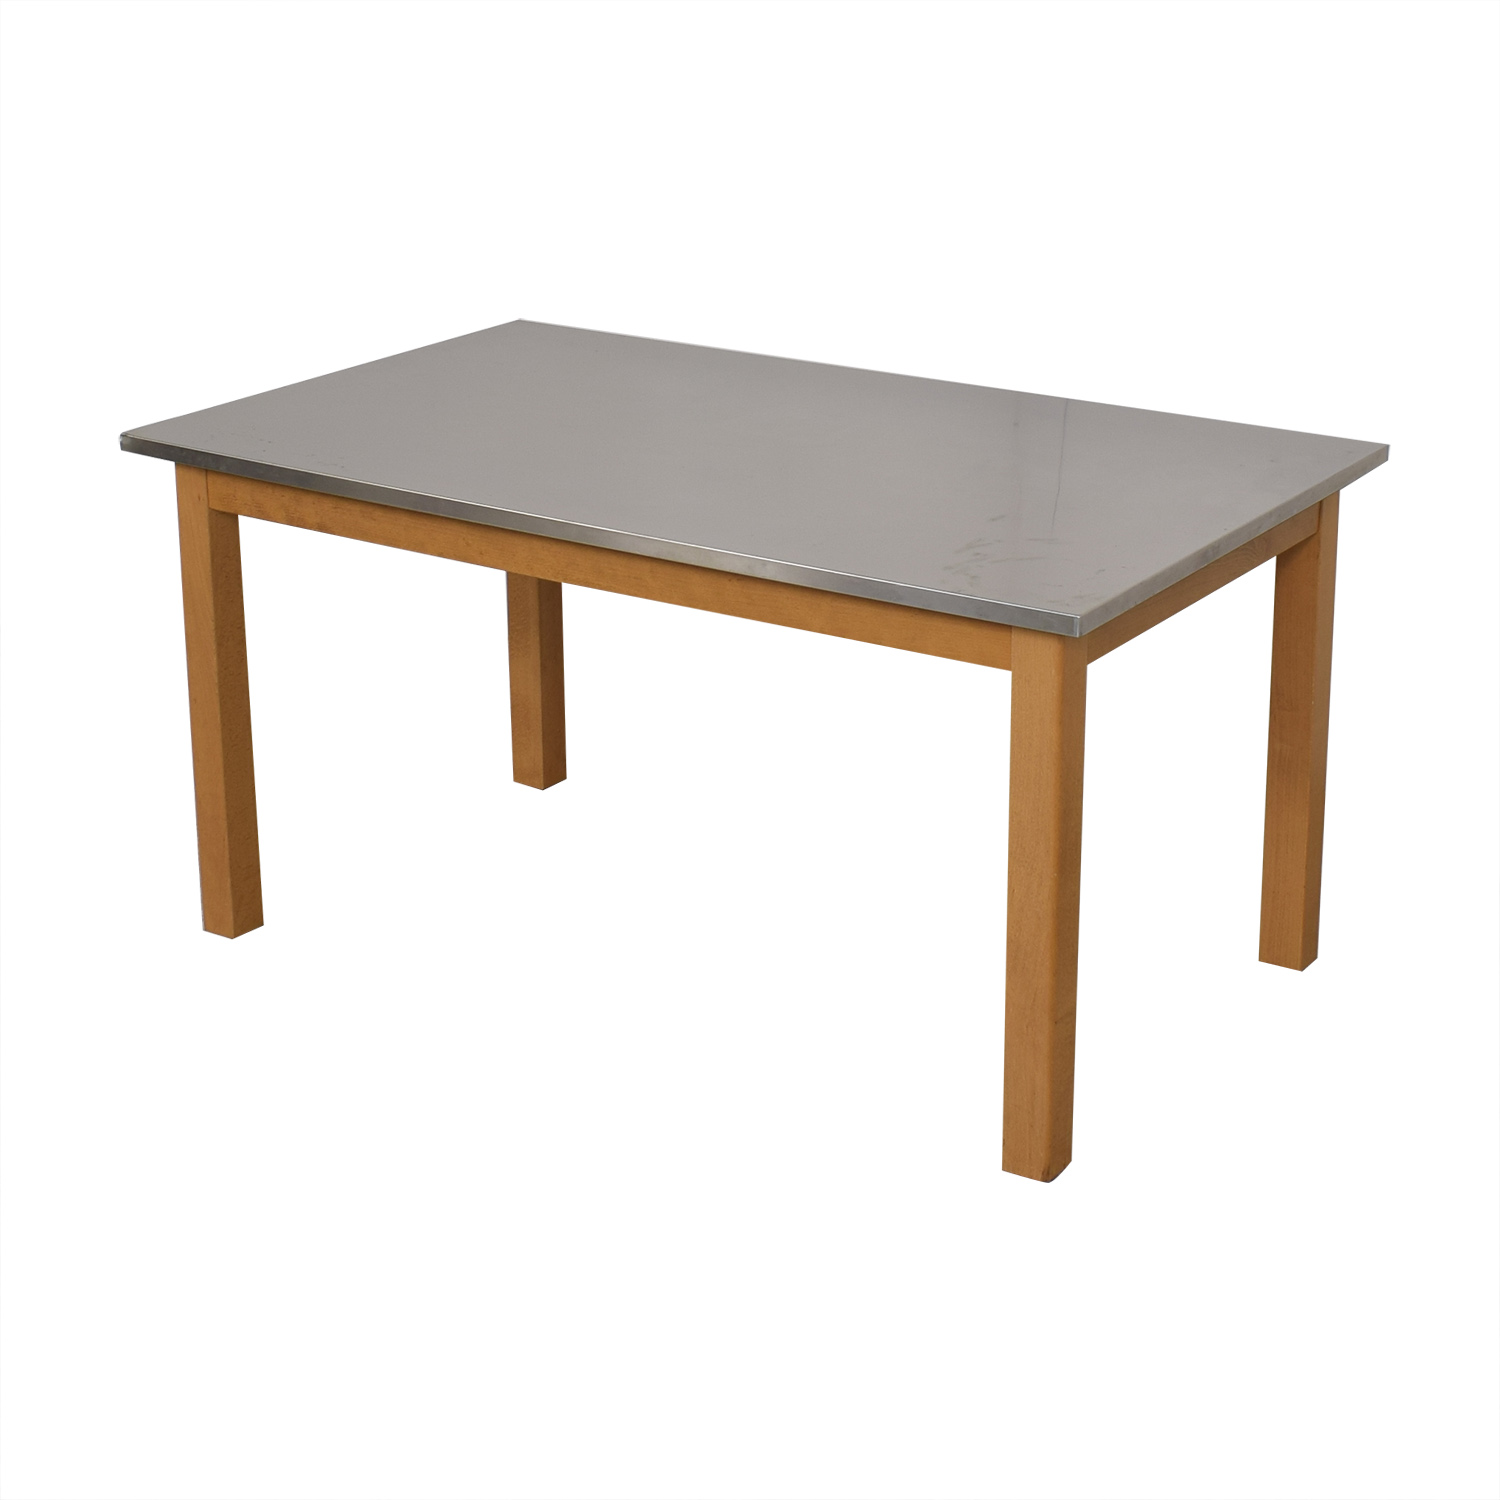 Pottery Barn Pottery Barn Dining Table second hand